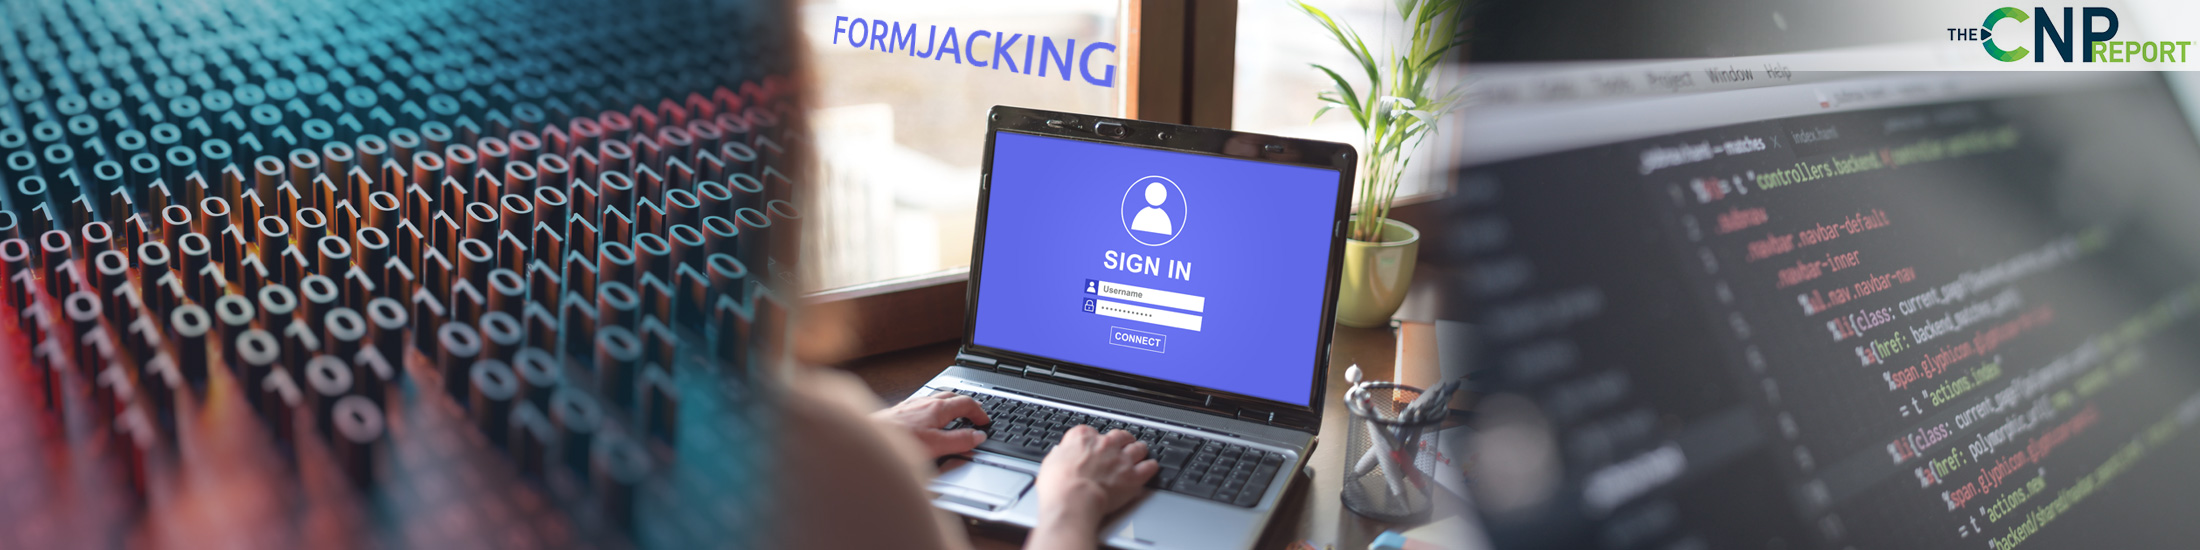 Formjacking 'Breakthrough Threat of the Year': Report